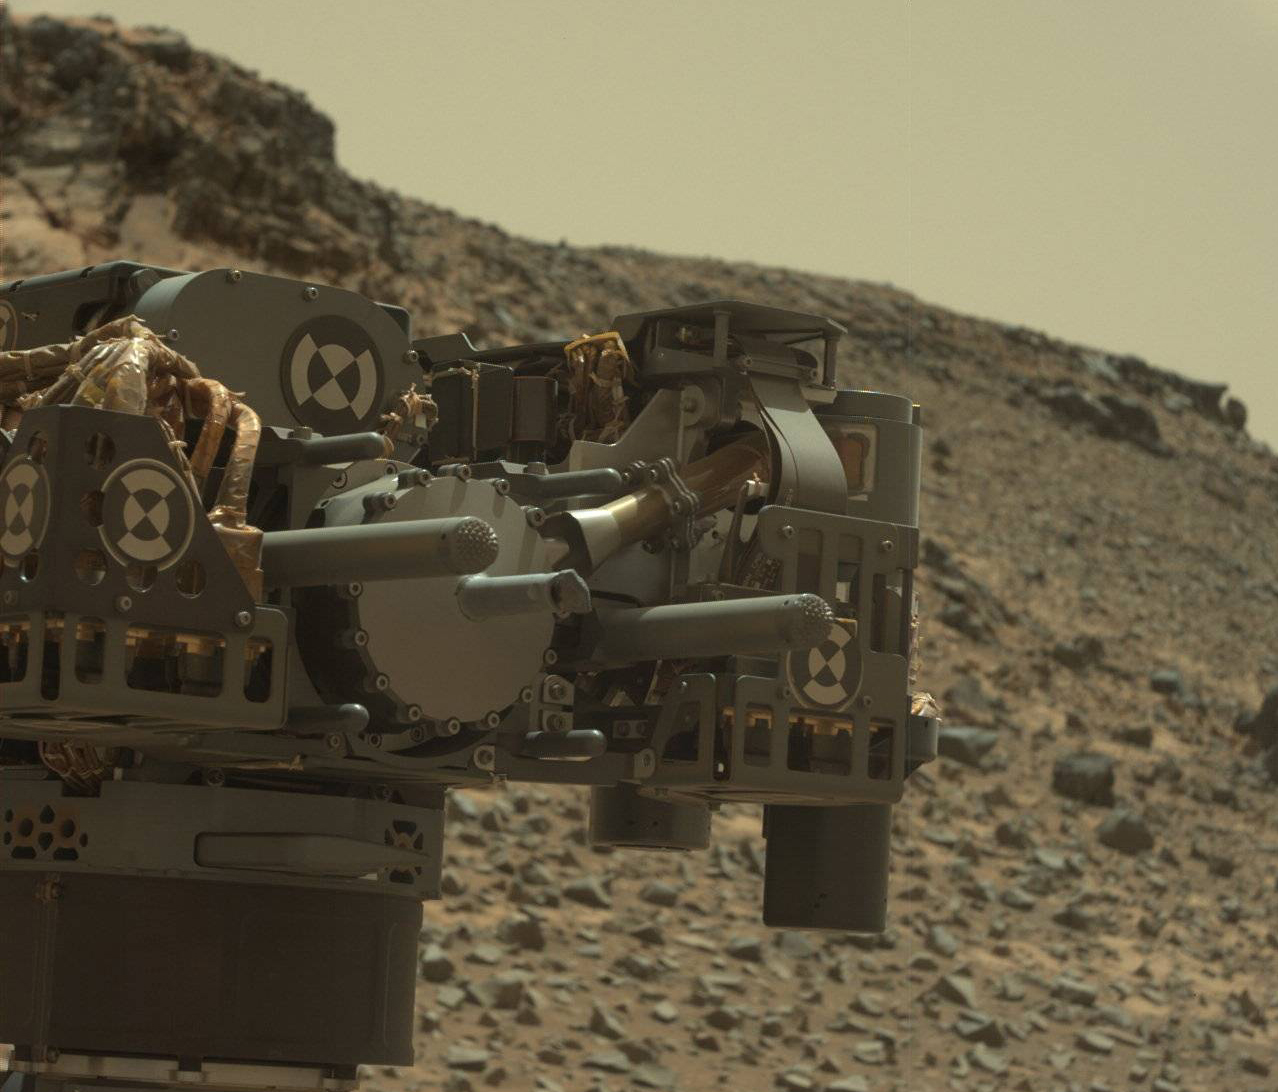 File photo of Curiosity's drill bit from Feb. 24, 2015. Credit: NASA/JPL-Caltech/MSSS